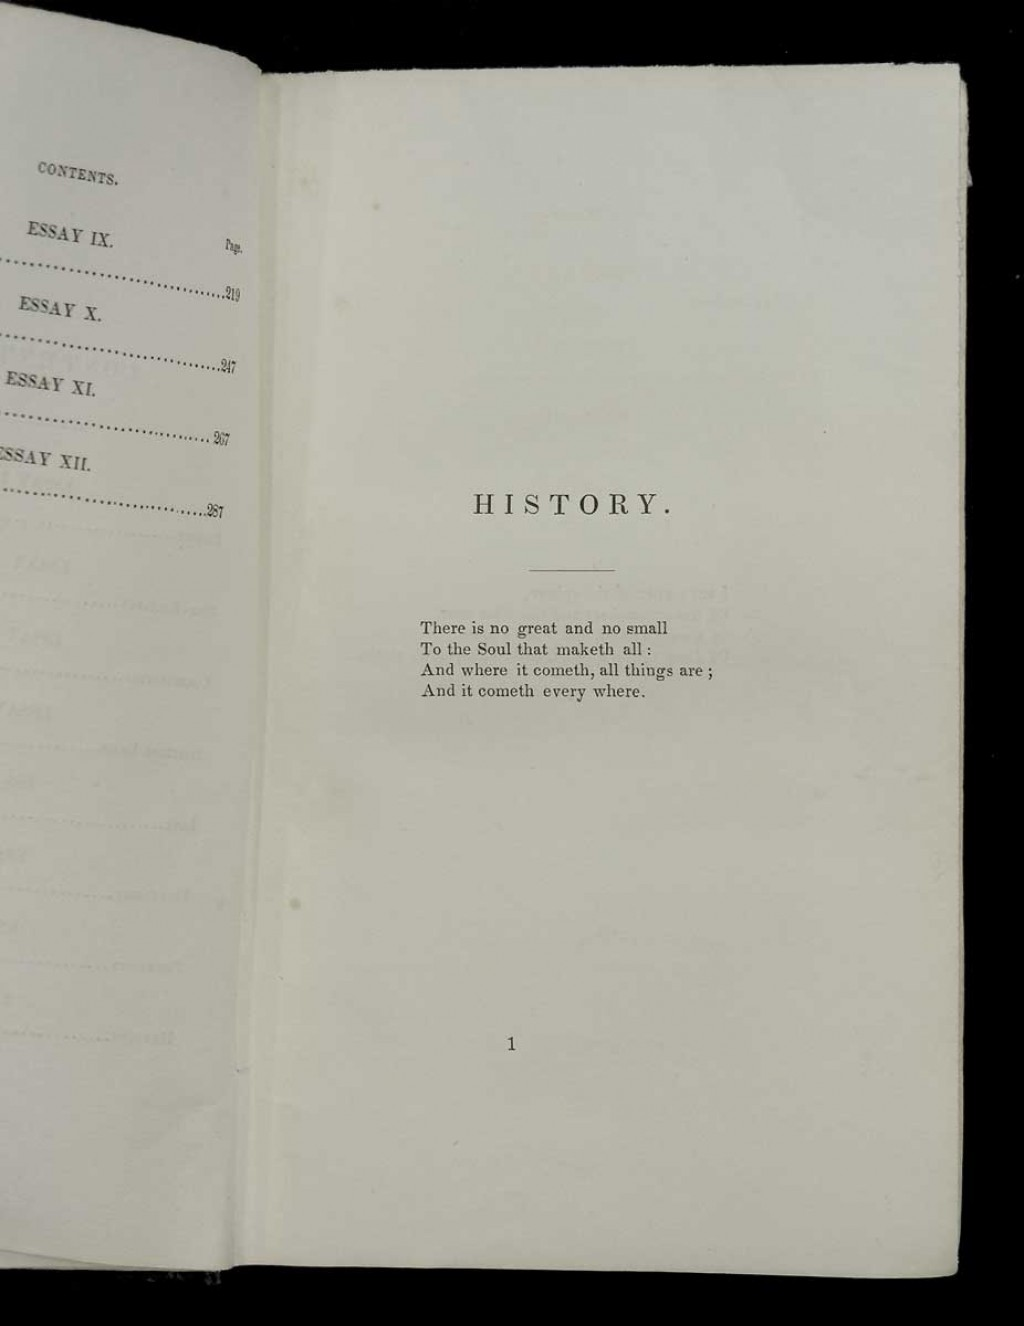 018 Essay Example 4818emerson Wl Emerson Dreaded Essays Self Reliance And Other Second Series Nature Large